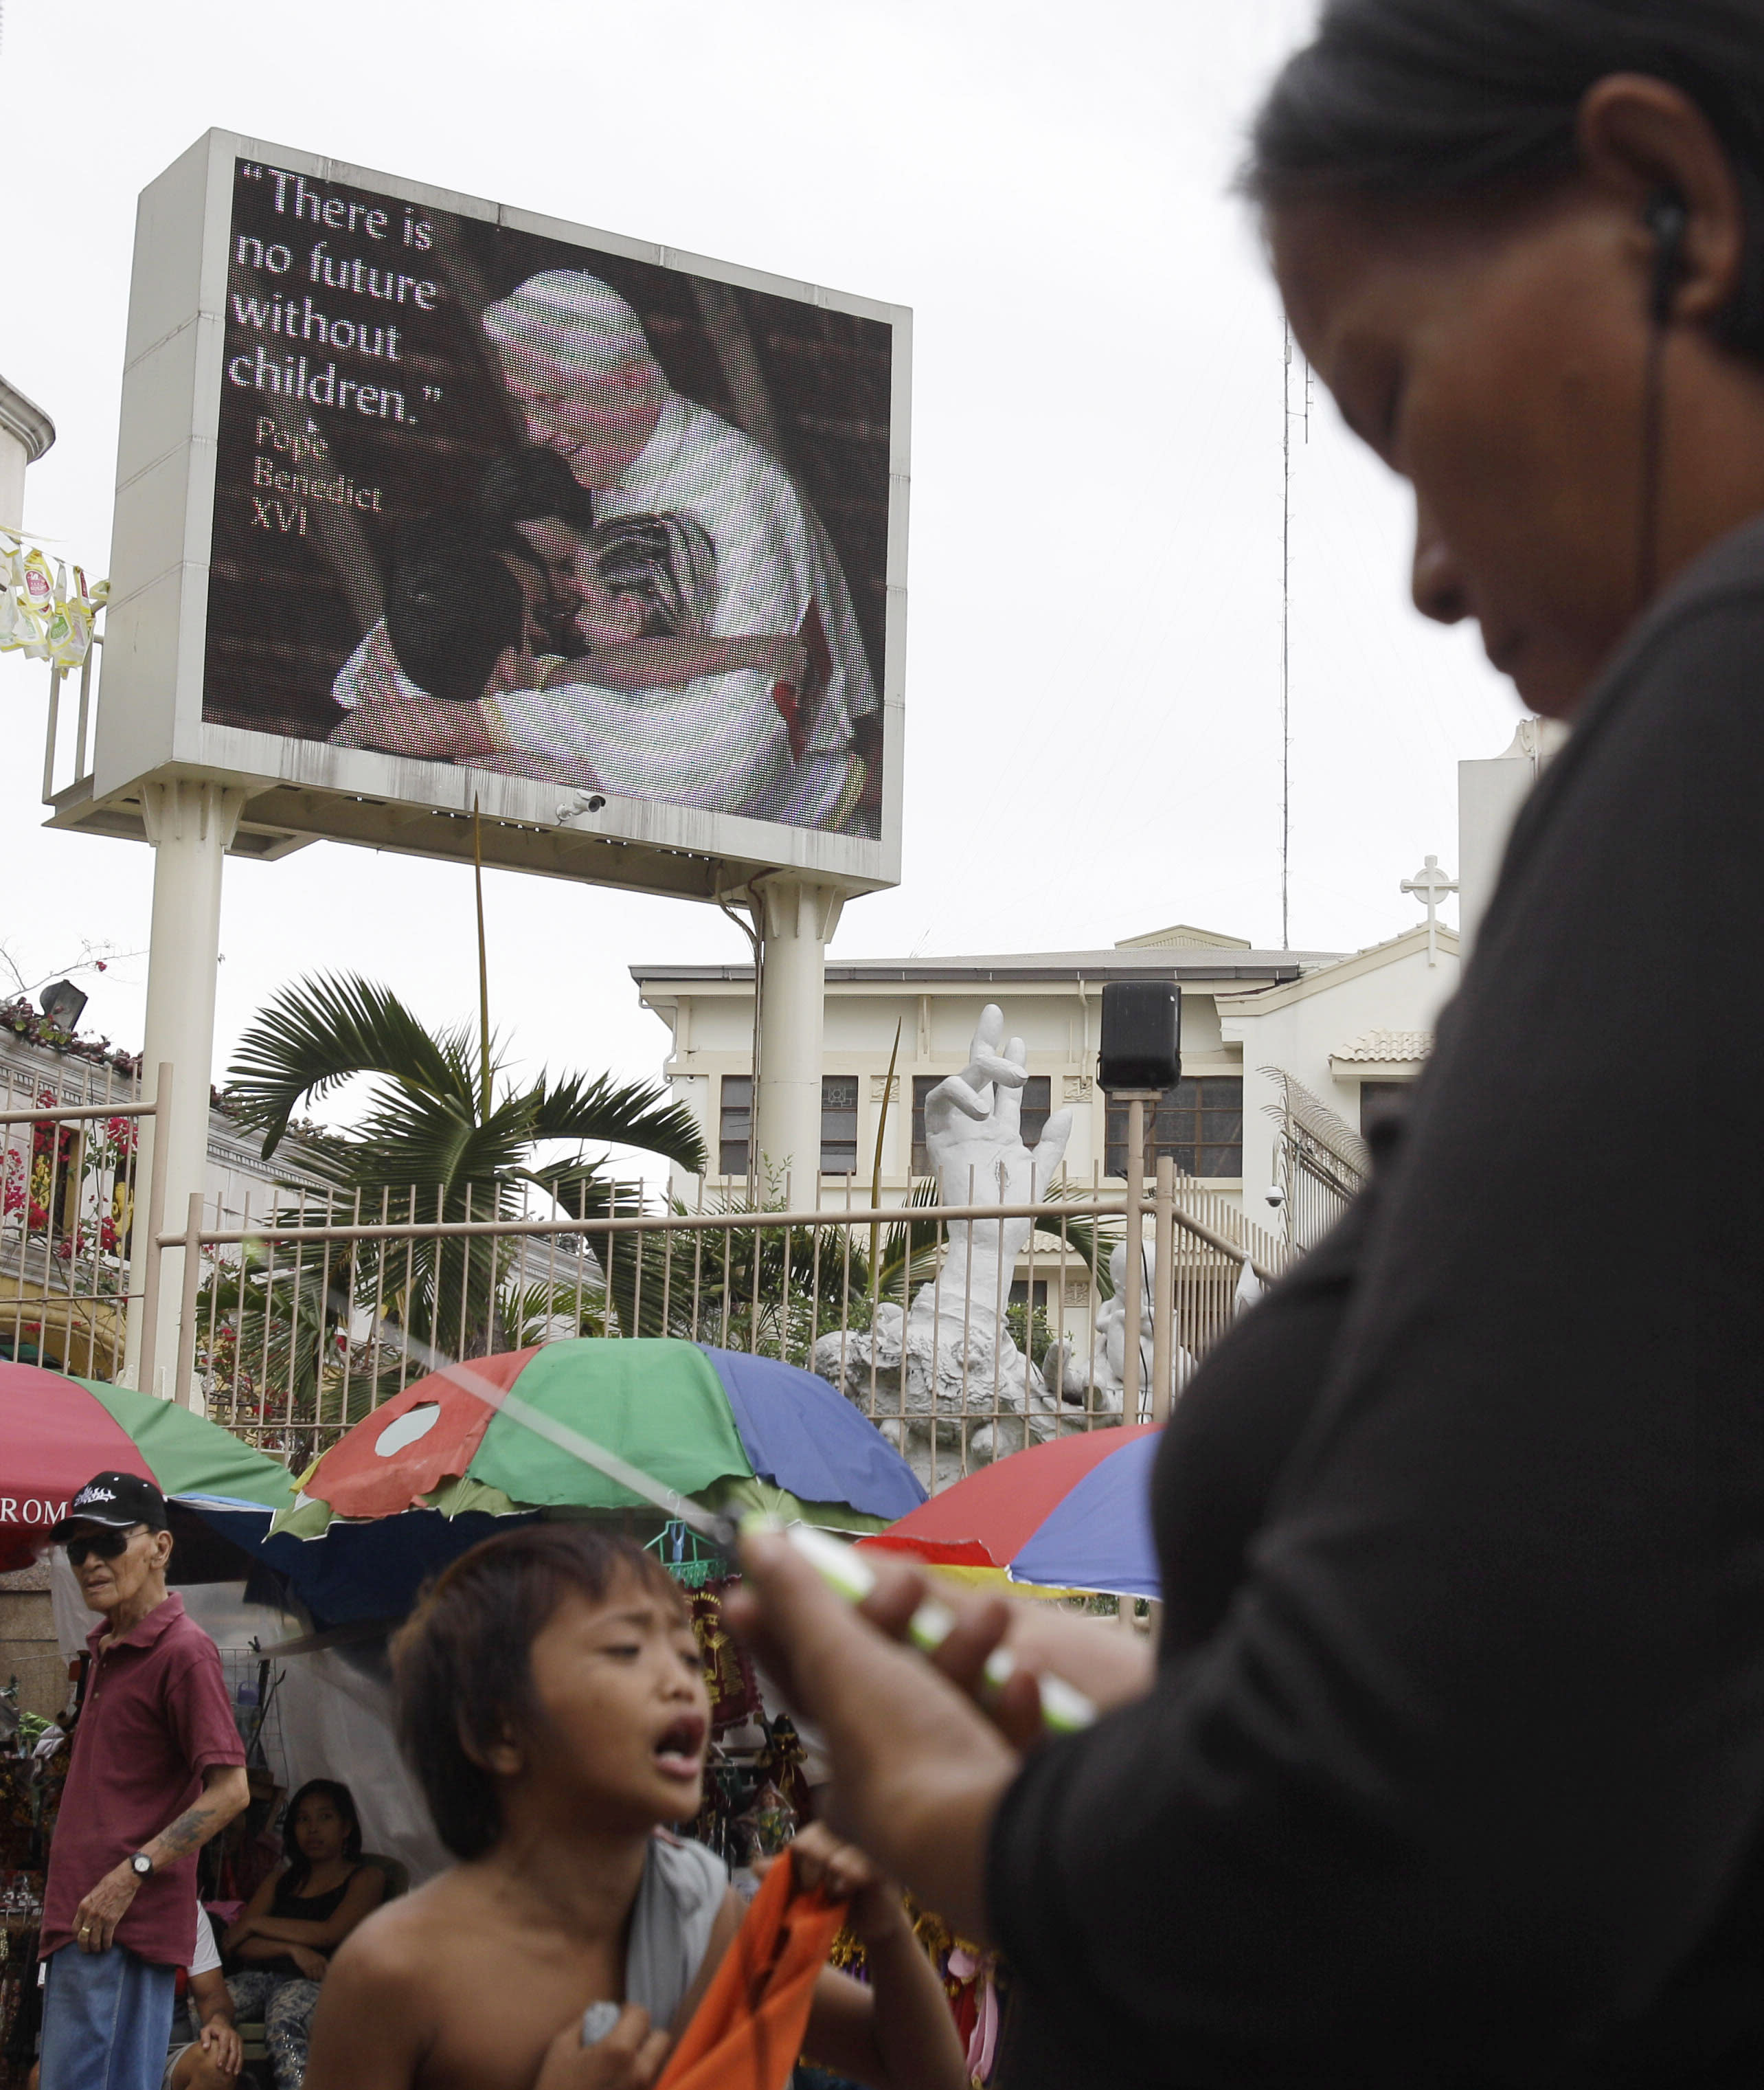 A picture of Pope Benedict XVI is shown on an electric signboard outside the Roman Catholic Minor Basilica of the Black Nazarene in downtown Manila, Philippines on Thursday, Jan. 3, 2013. Philippine President Benigno Aquino III last month signed the Responsible Parenthood and Reproductive Health Act of 2012. The law that provides state funding for contraceptives for the poor pitted the dominant Roman Catholic Church in an epic battle against the popular Aquino and his followers. (AP Photo/Aaron Favila)